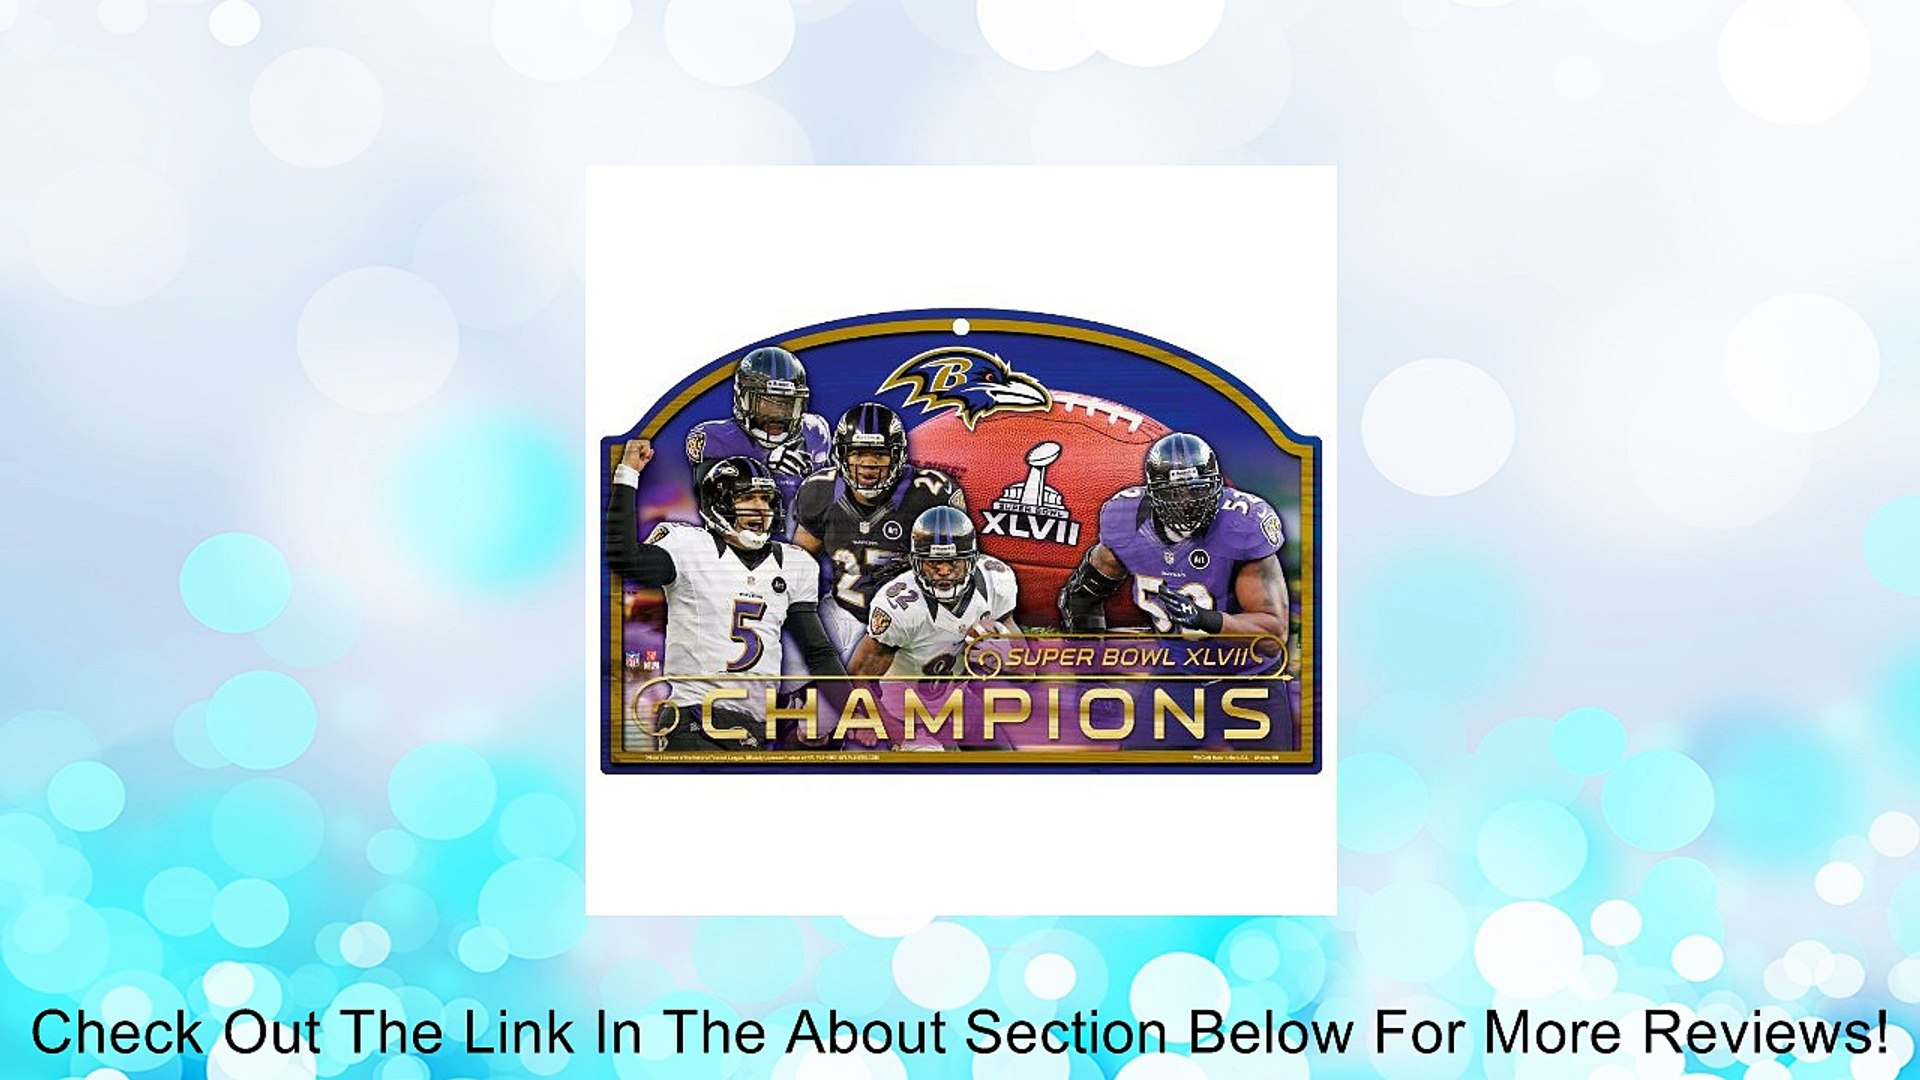 NFL Baltimore Ravens Super Bowl XLVII Champions Multiple Players 11-by-17 Wood Sign Review